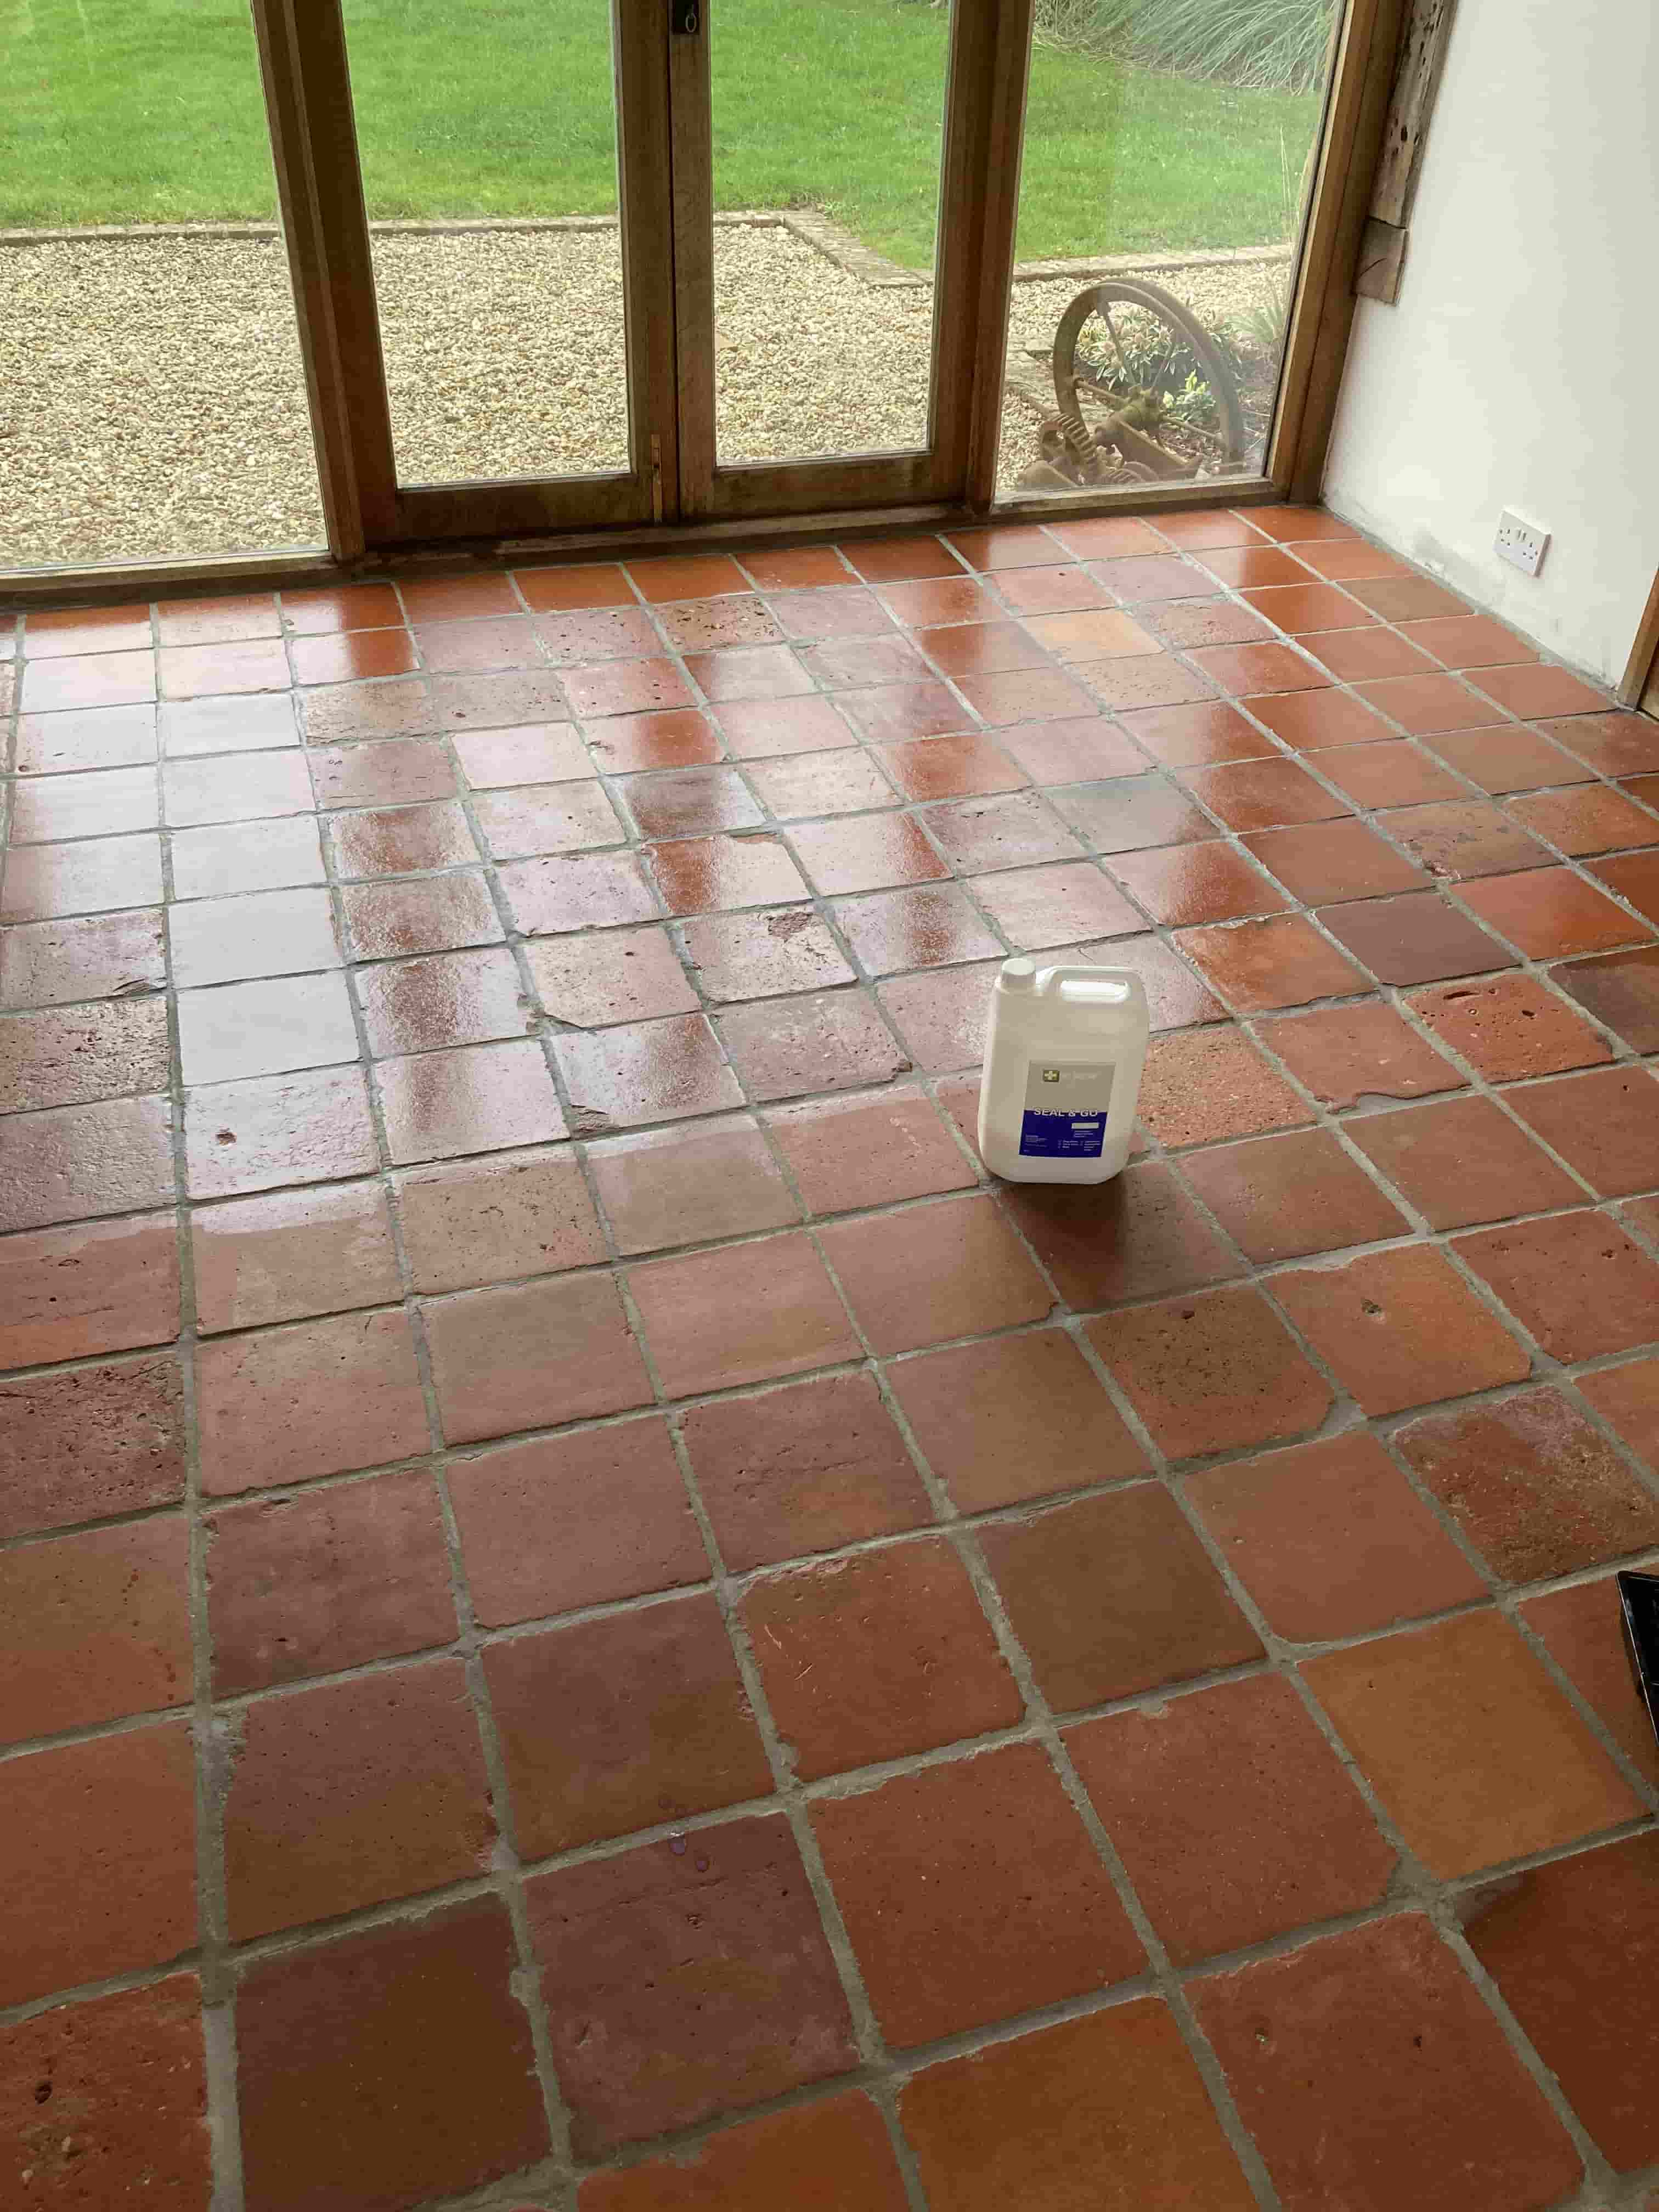 Terracotta and Quarry Tiled Floor After Renovation at Old Barn Conversion Hawkinge